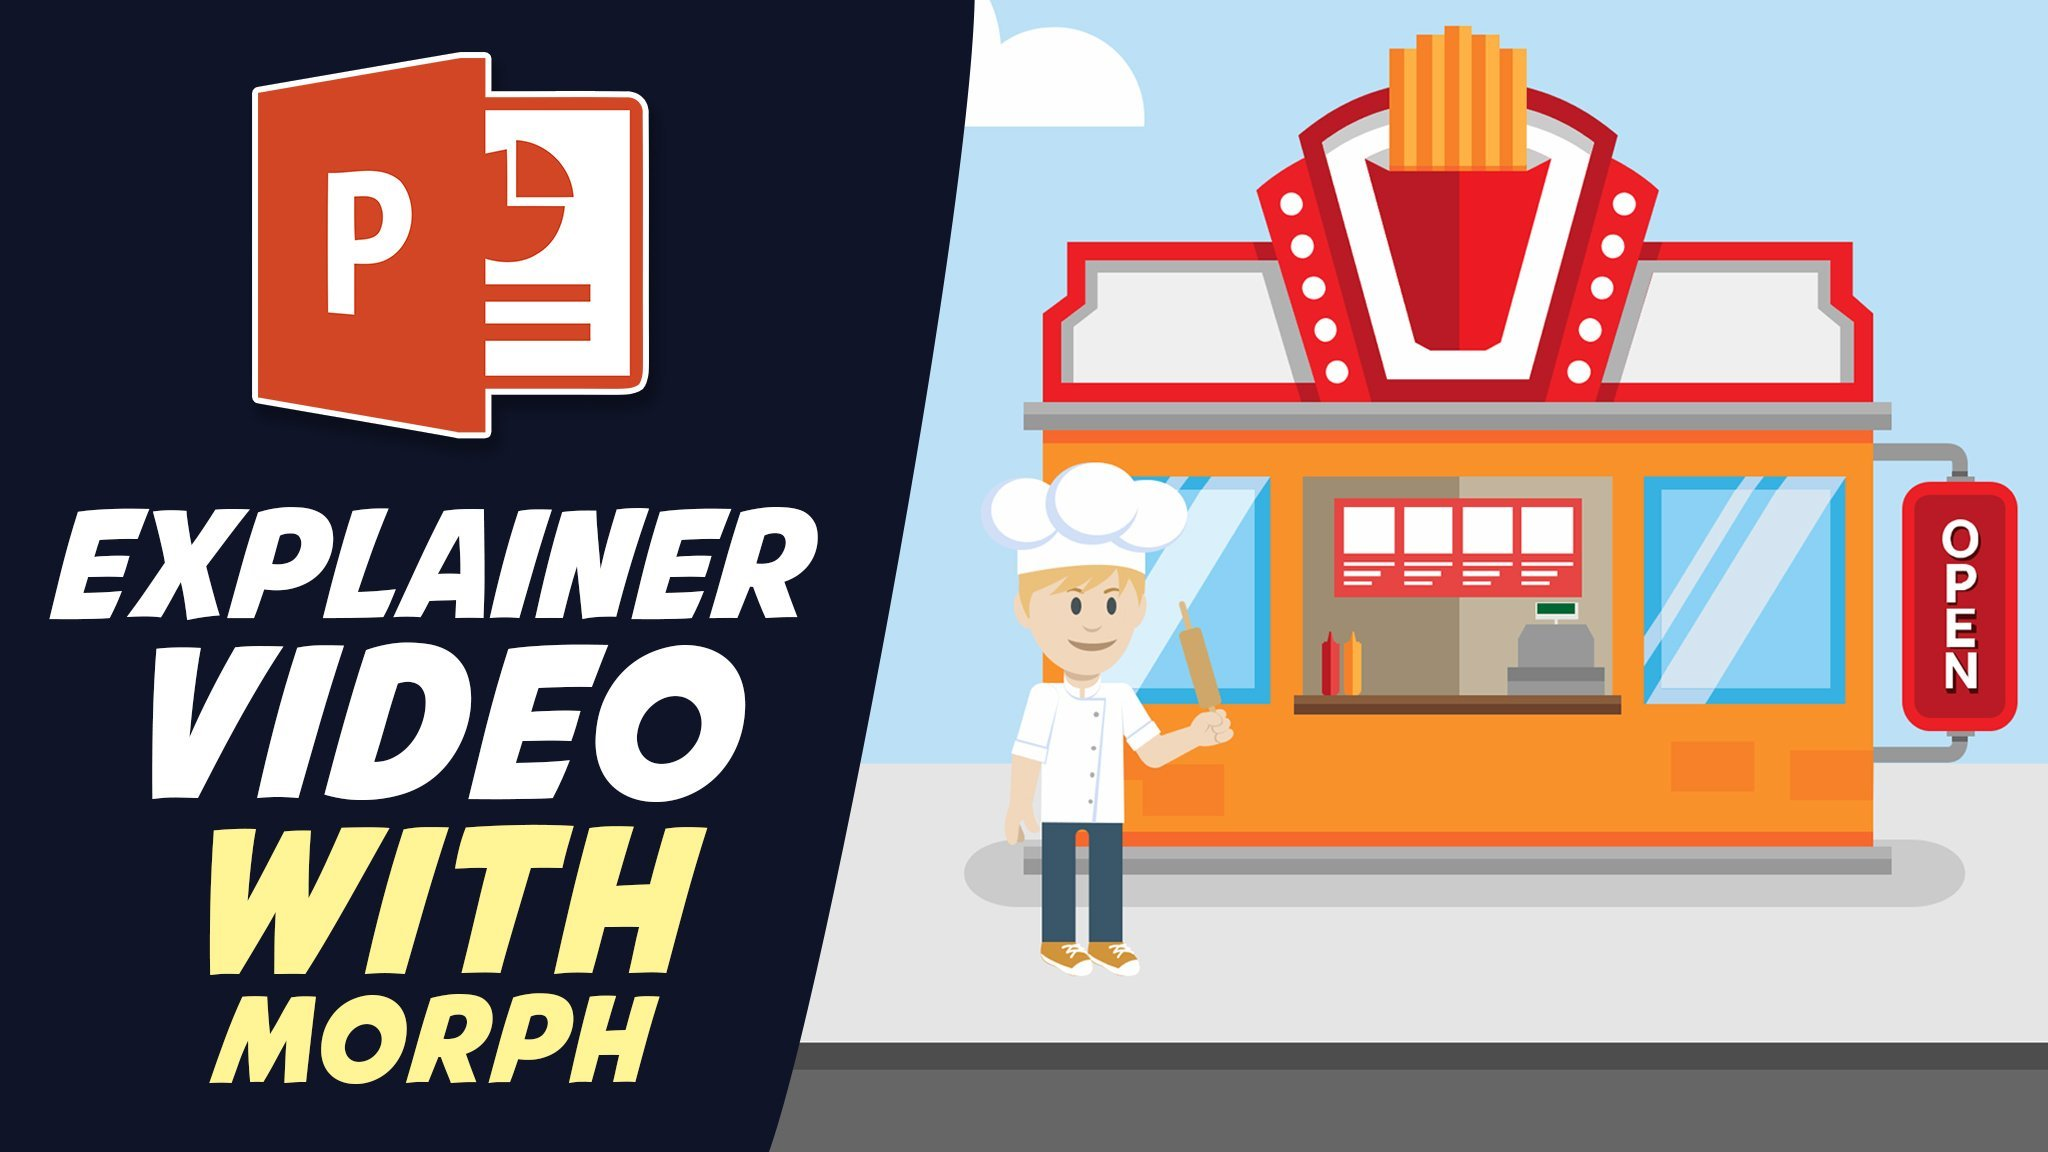 Explainer Videos in PowerPoint - Create an Explainer video with MORPH